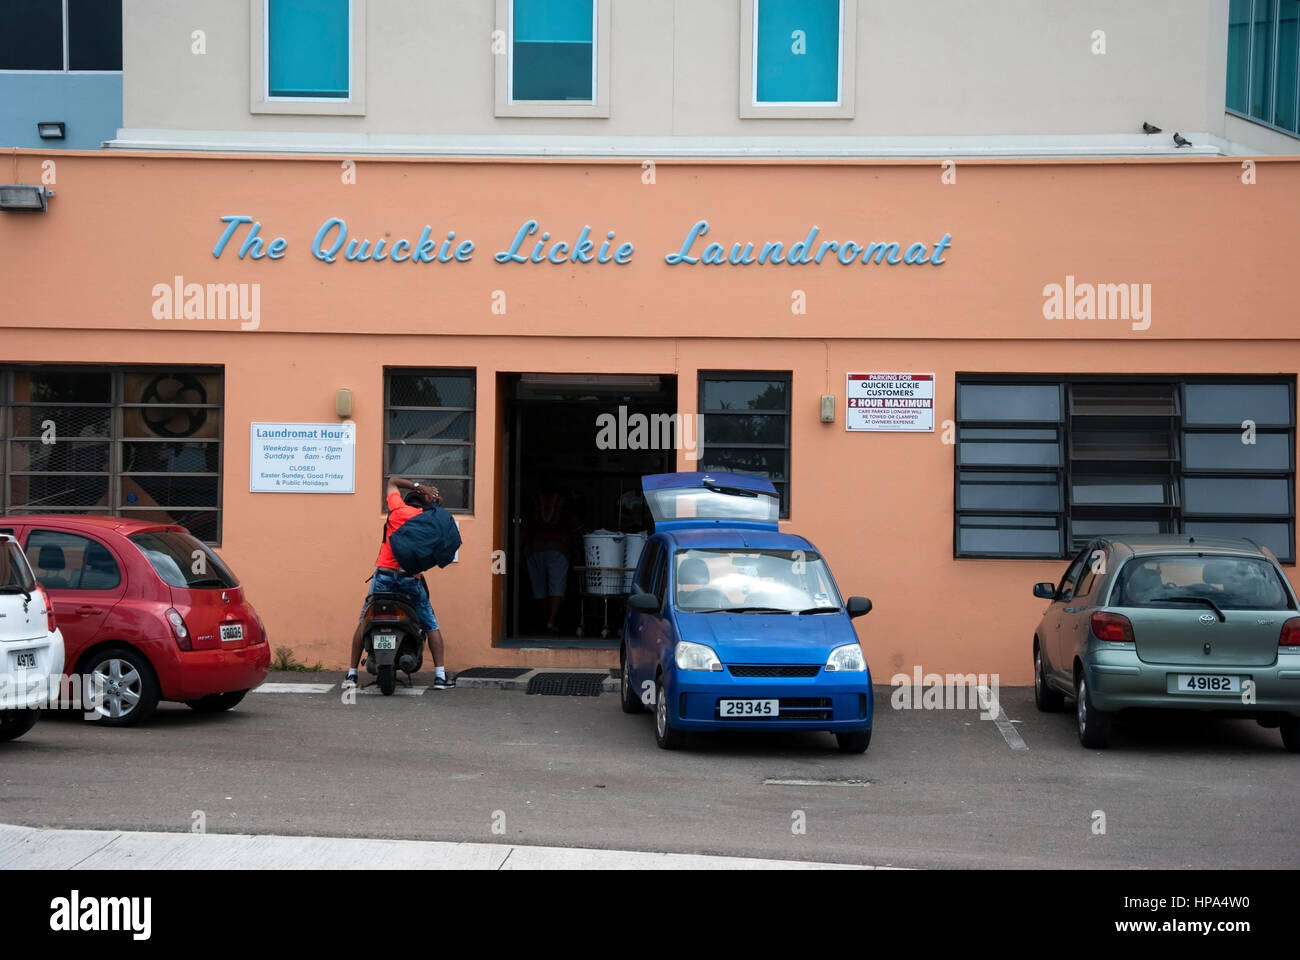 Funny Laundromat Pictures The Quickie Lickie Laundromat 74 Serpentine Road Hamilton Bermuda